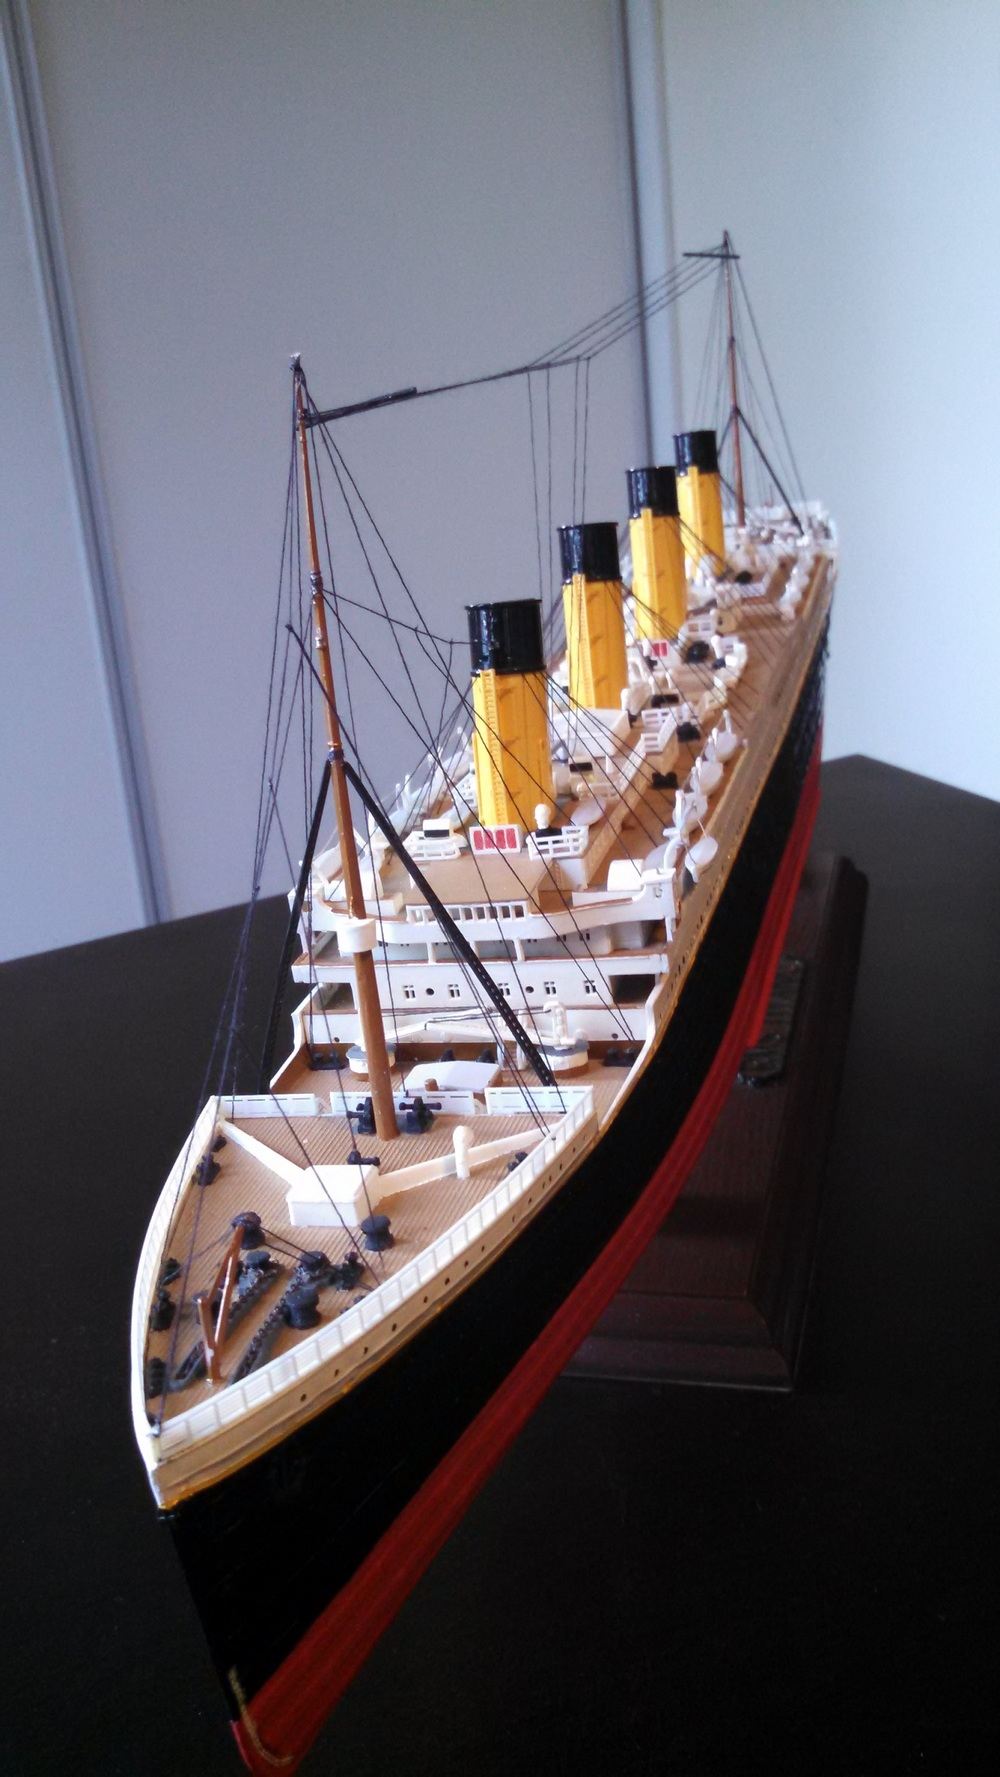 Titanic-big-model.jpg